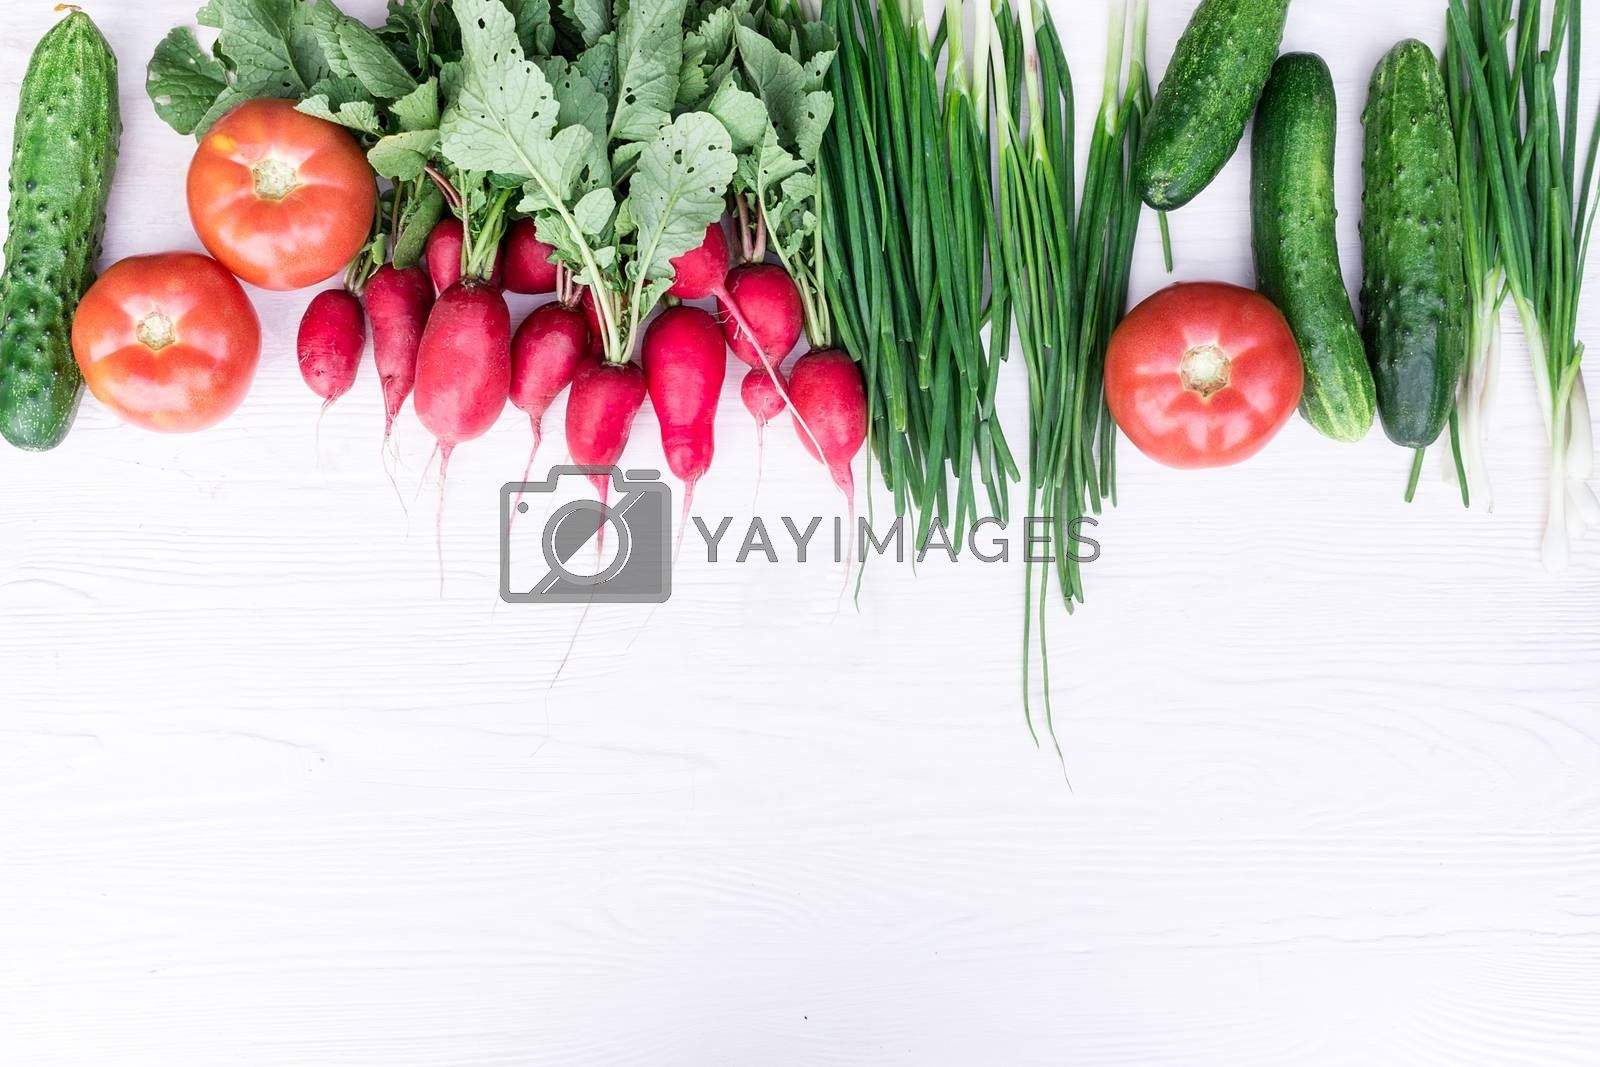 Fresh vegetables from the garden on a white background